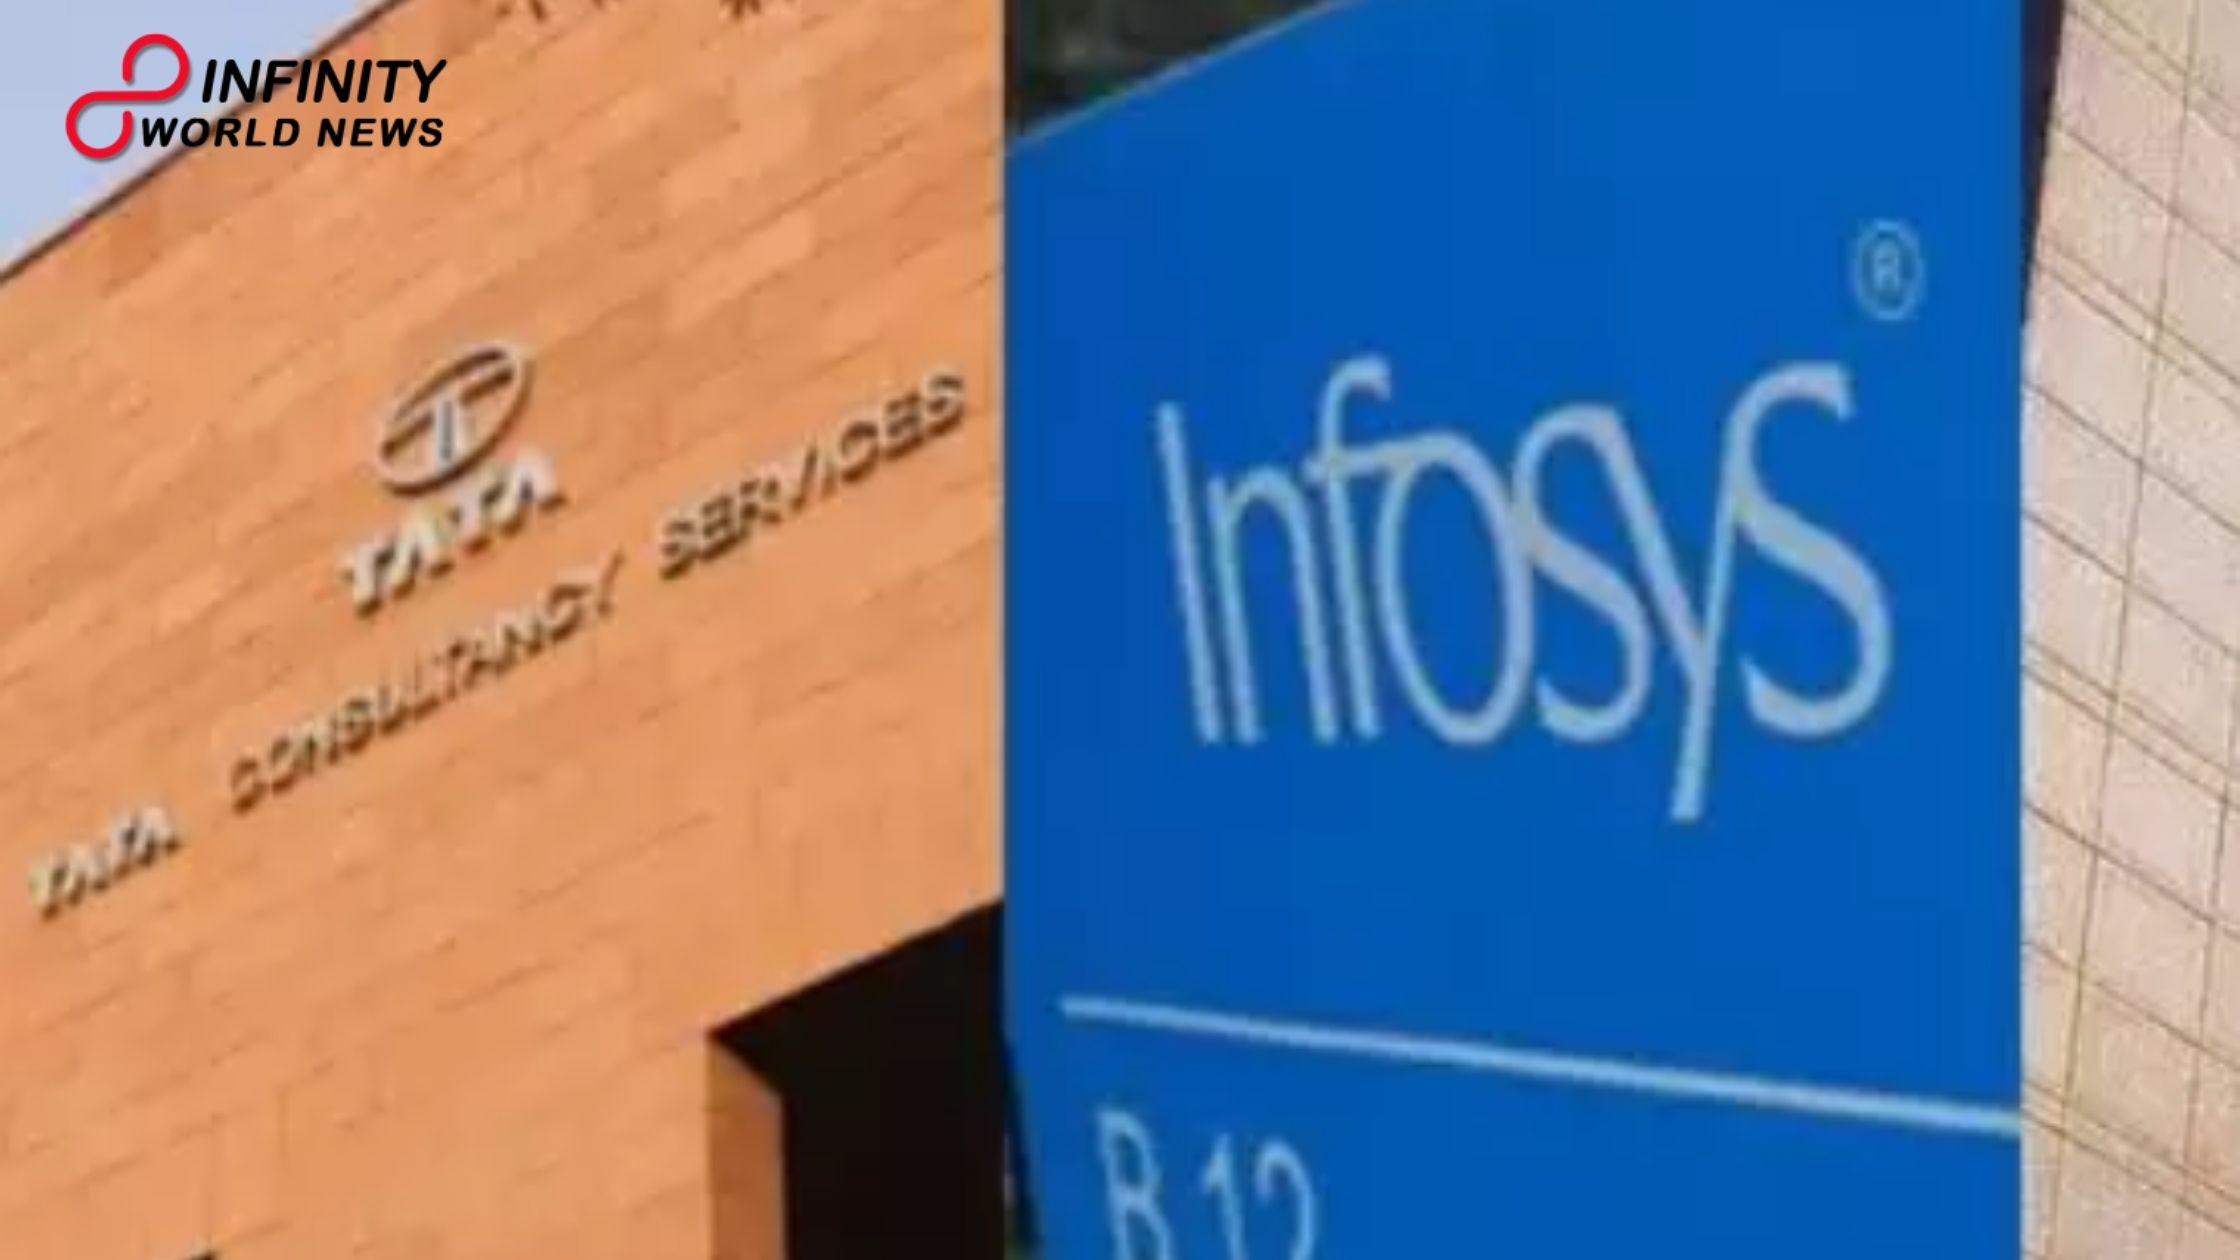 COVID-19 effect _ TCS, Infosys to pick up the most as customers step up IT spending, says report